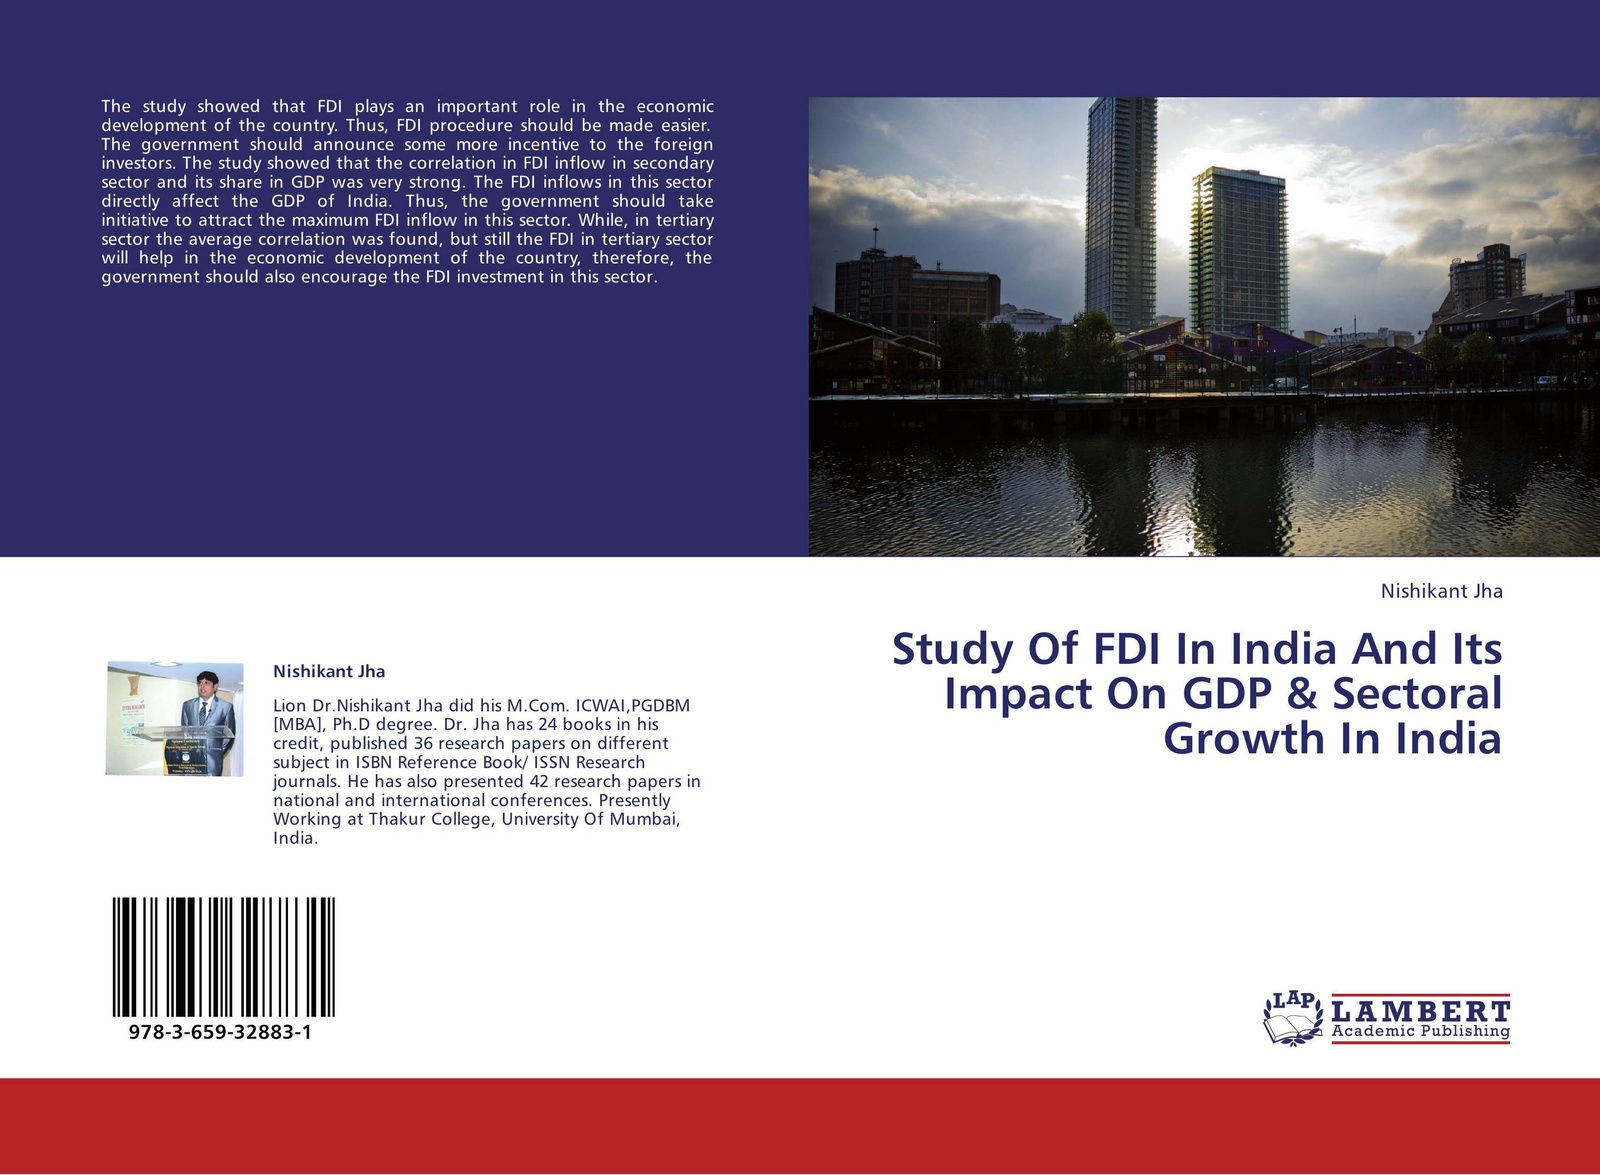 Nishikant Jha Study Of FDI In India And Its Impact On GDP & Sectoral Growth In India